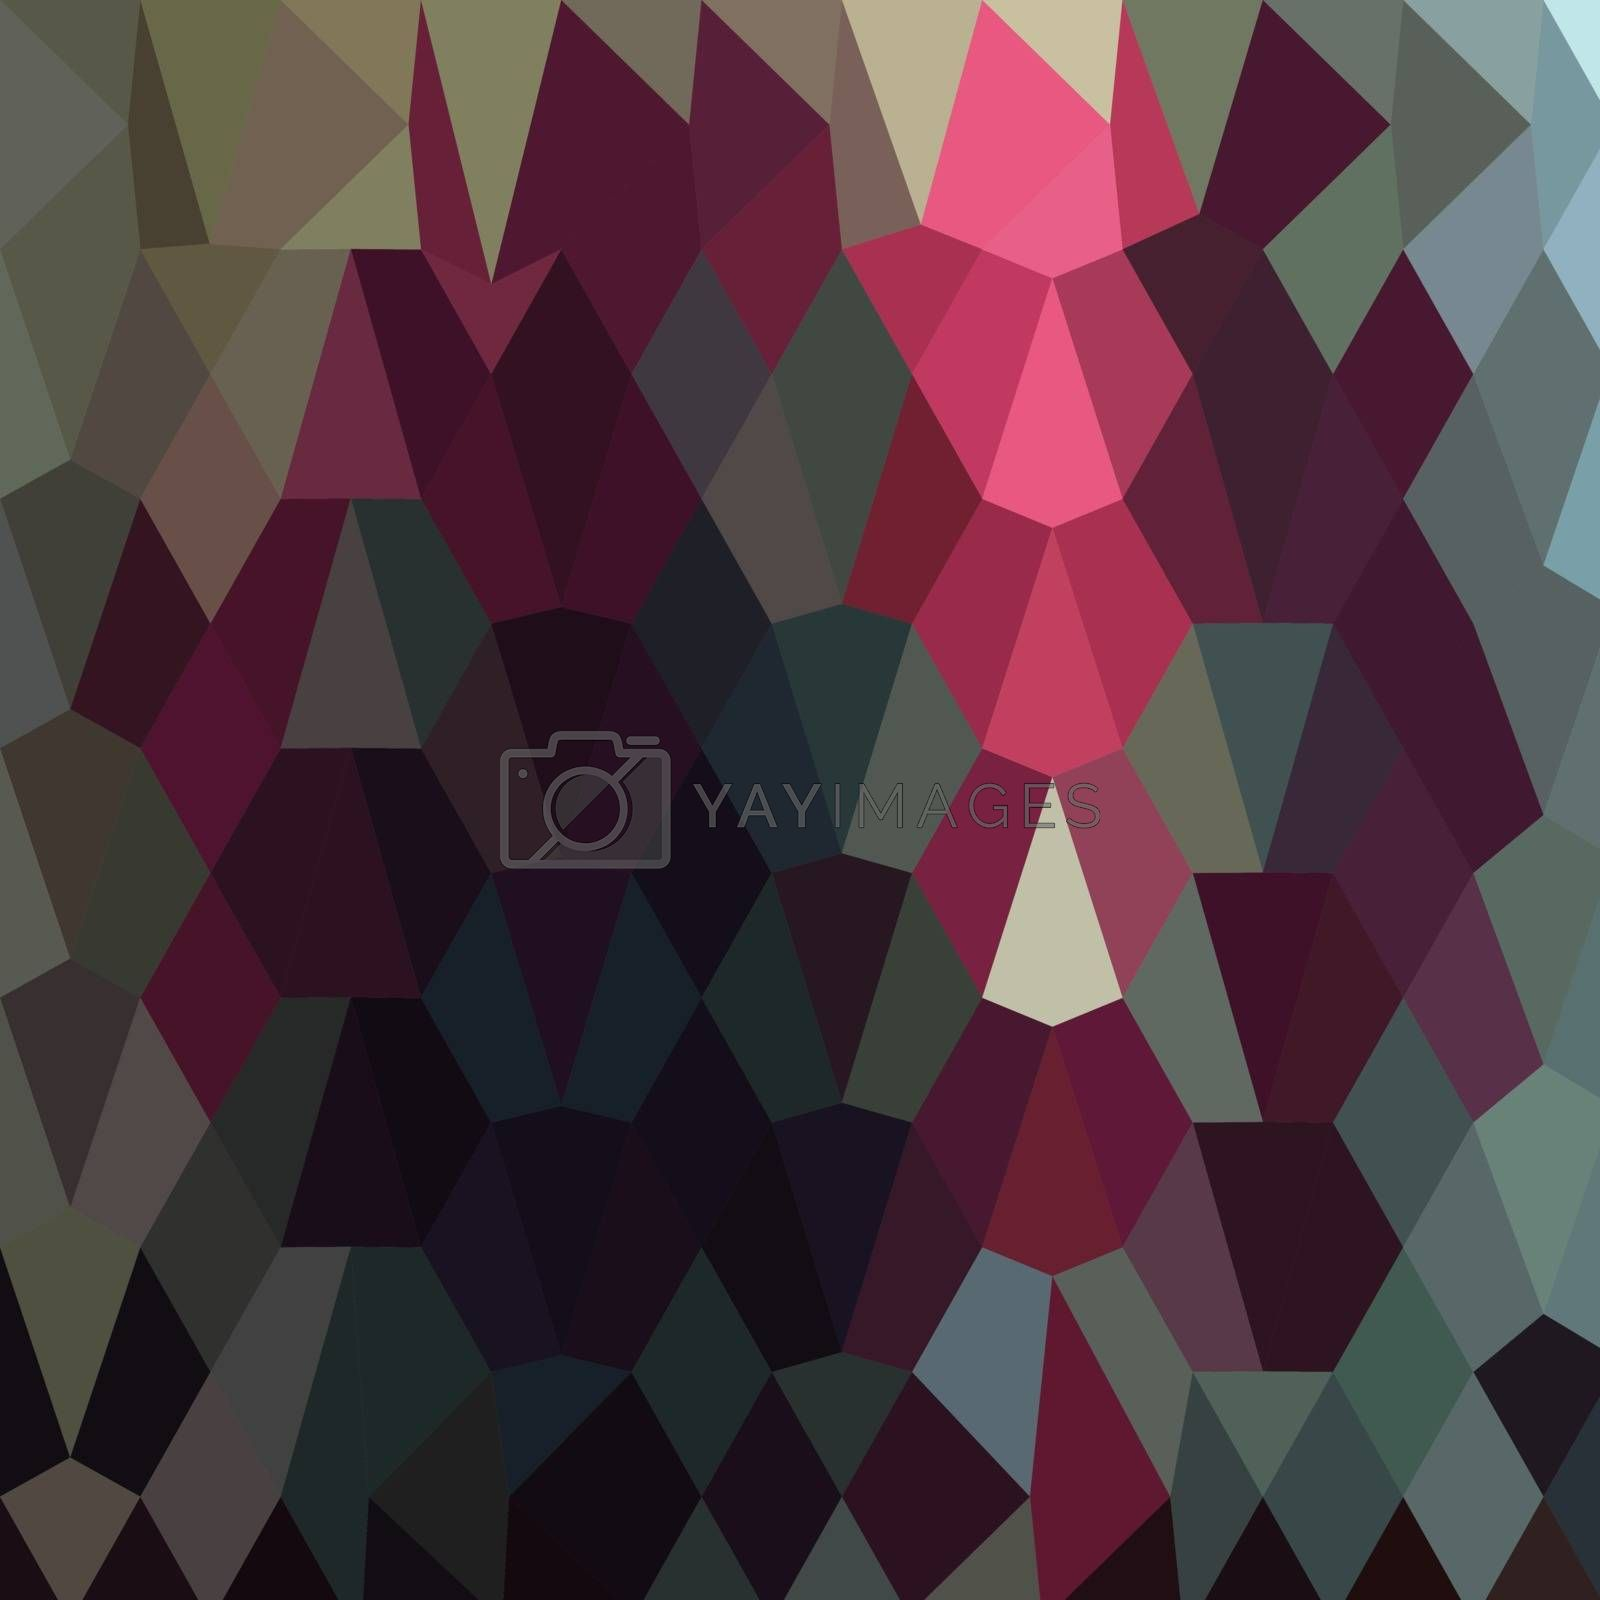 Low polygon style illustration of a burgundy abstract background.